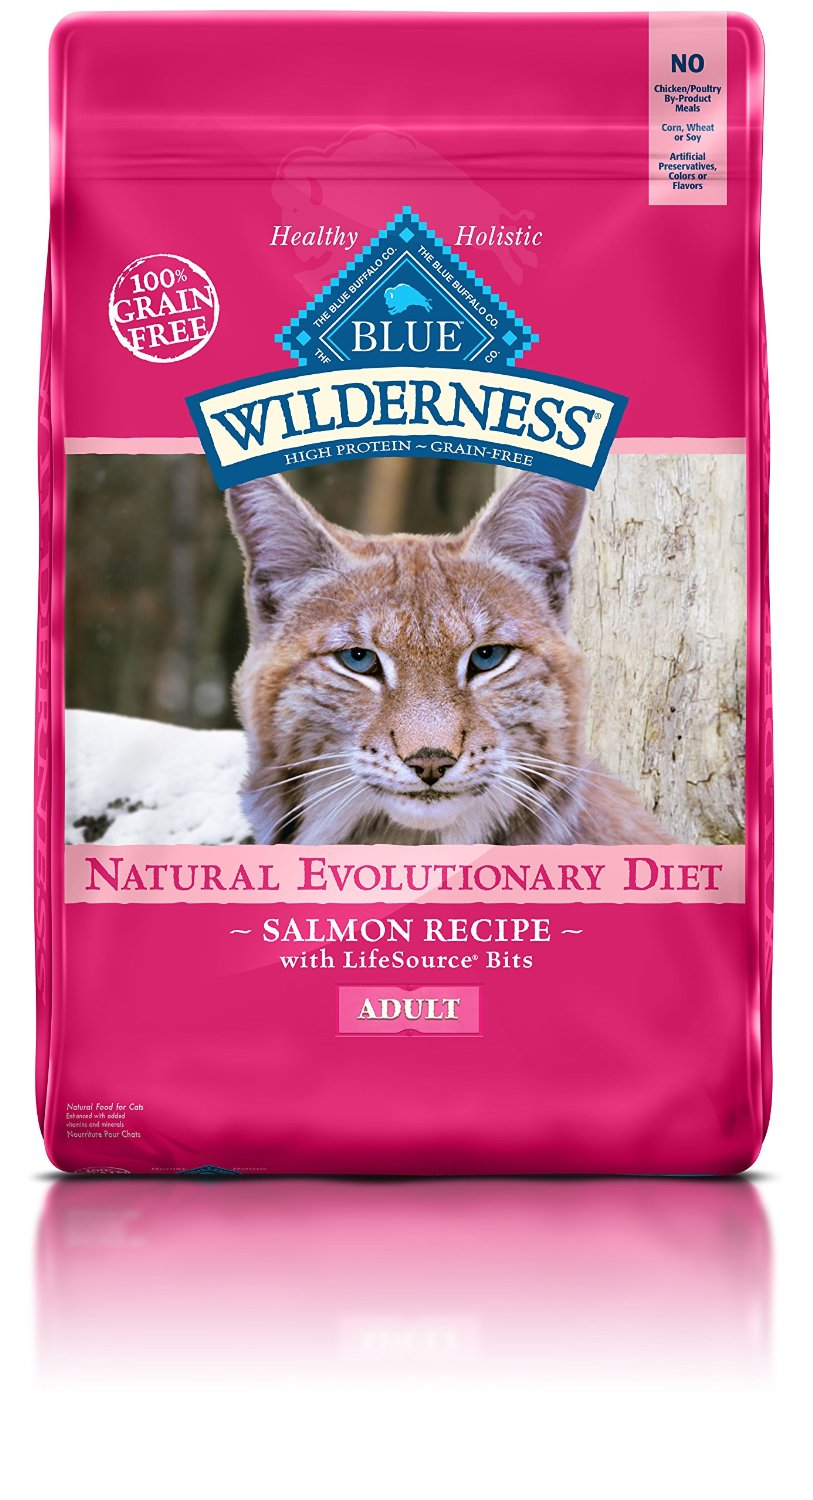 Dry Cat Food The Smart Cat Guide